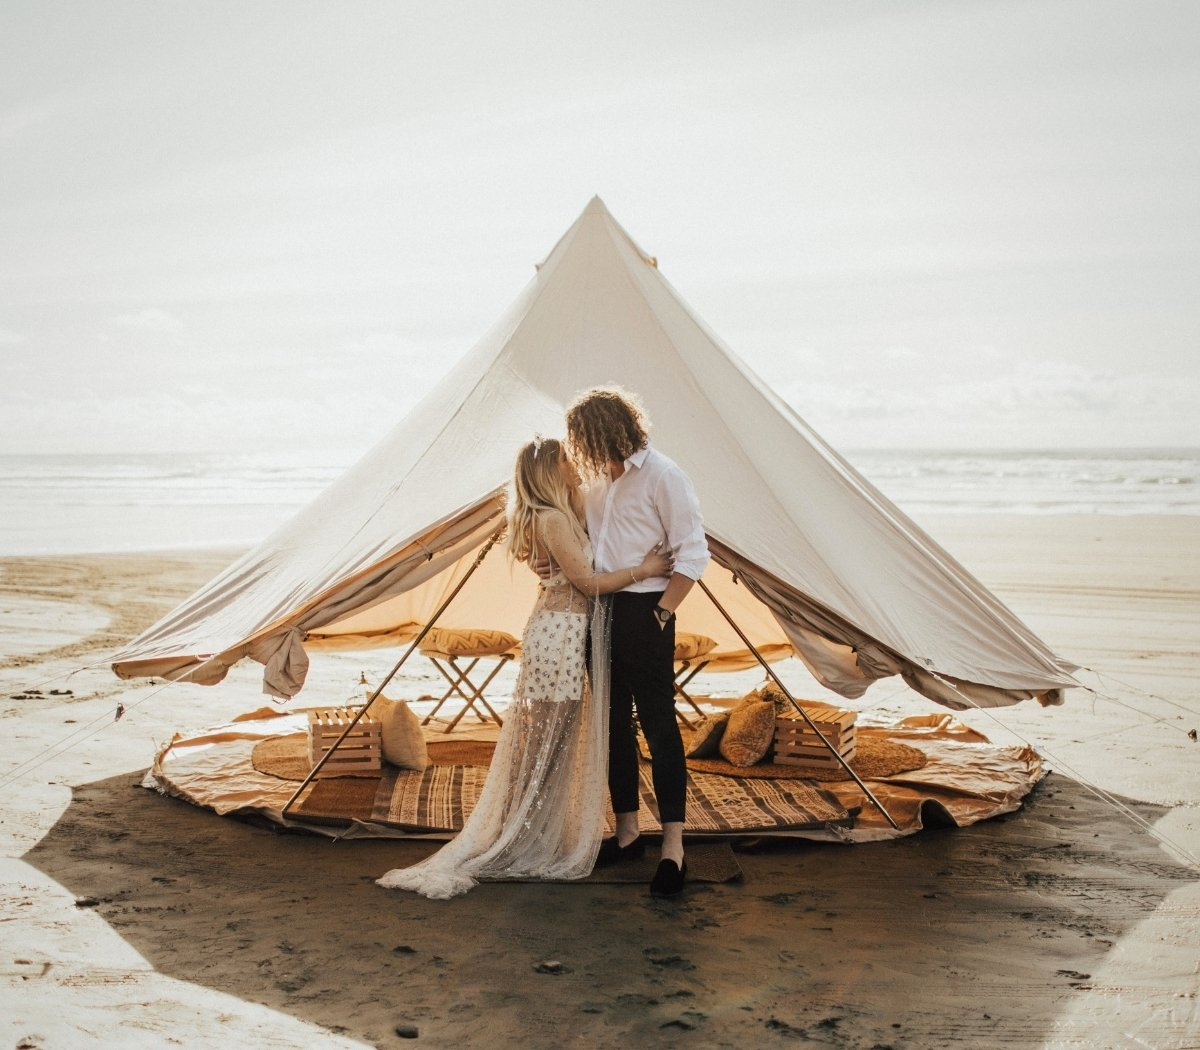 A fashionable couple stands on the beach in front of a canvas shade fly to keep cool in the shade.